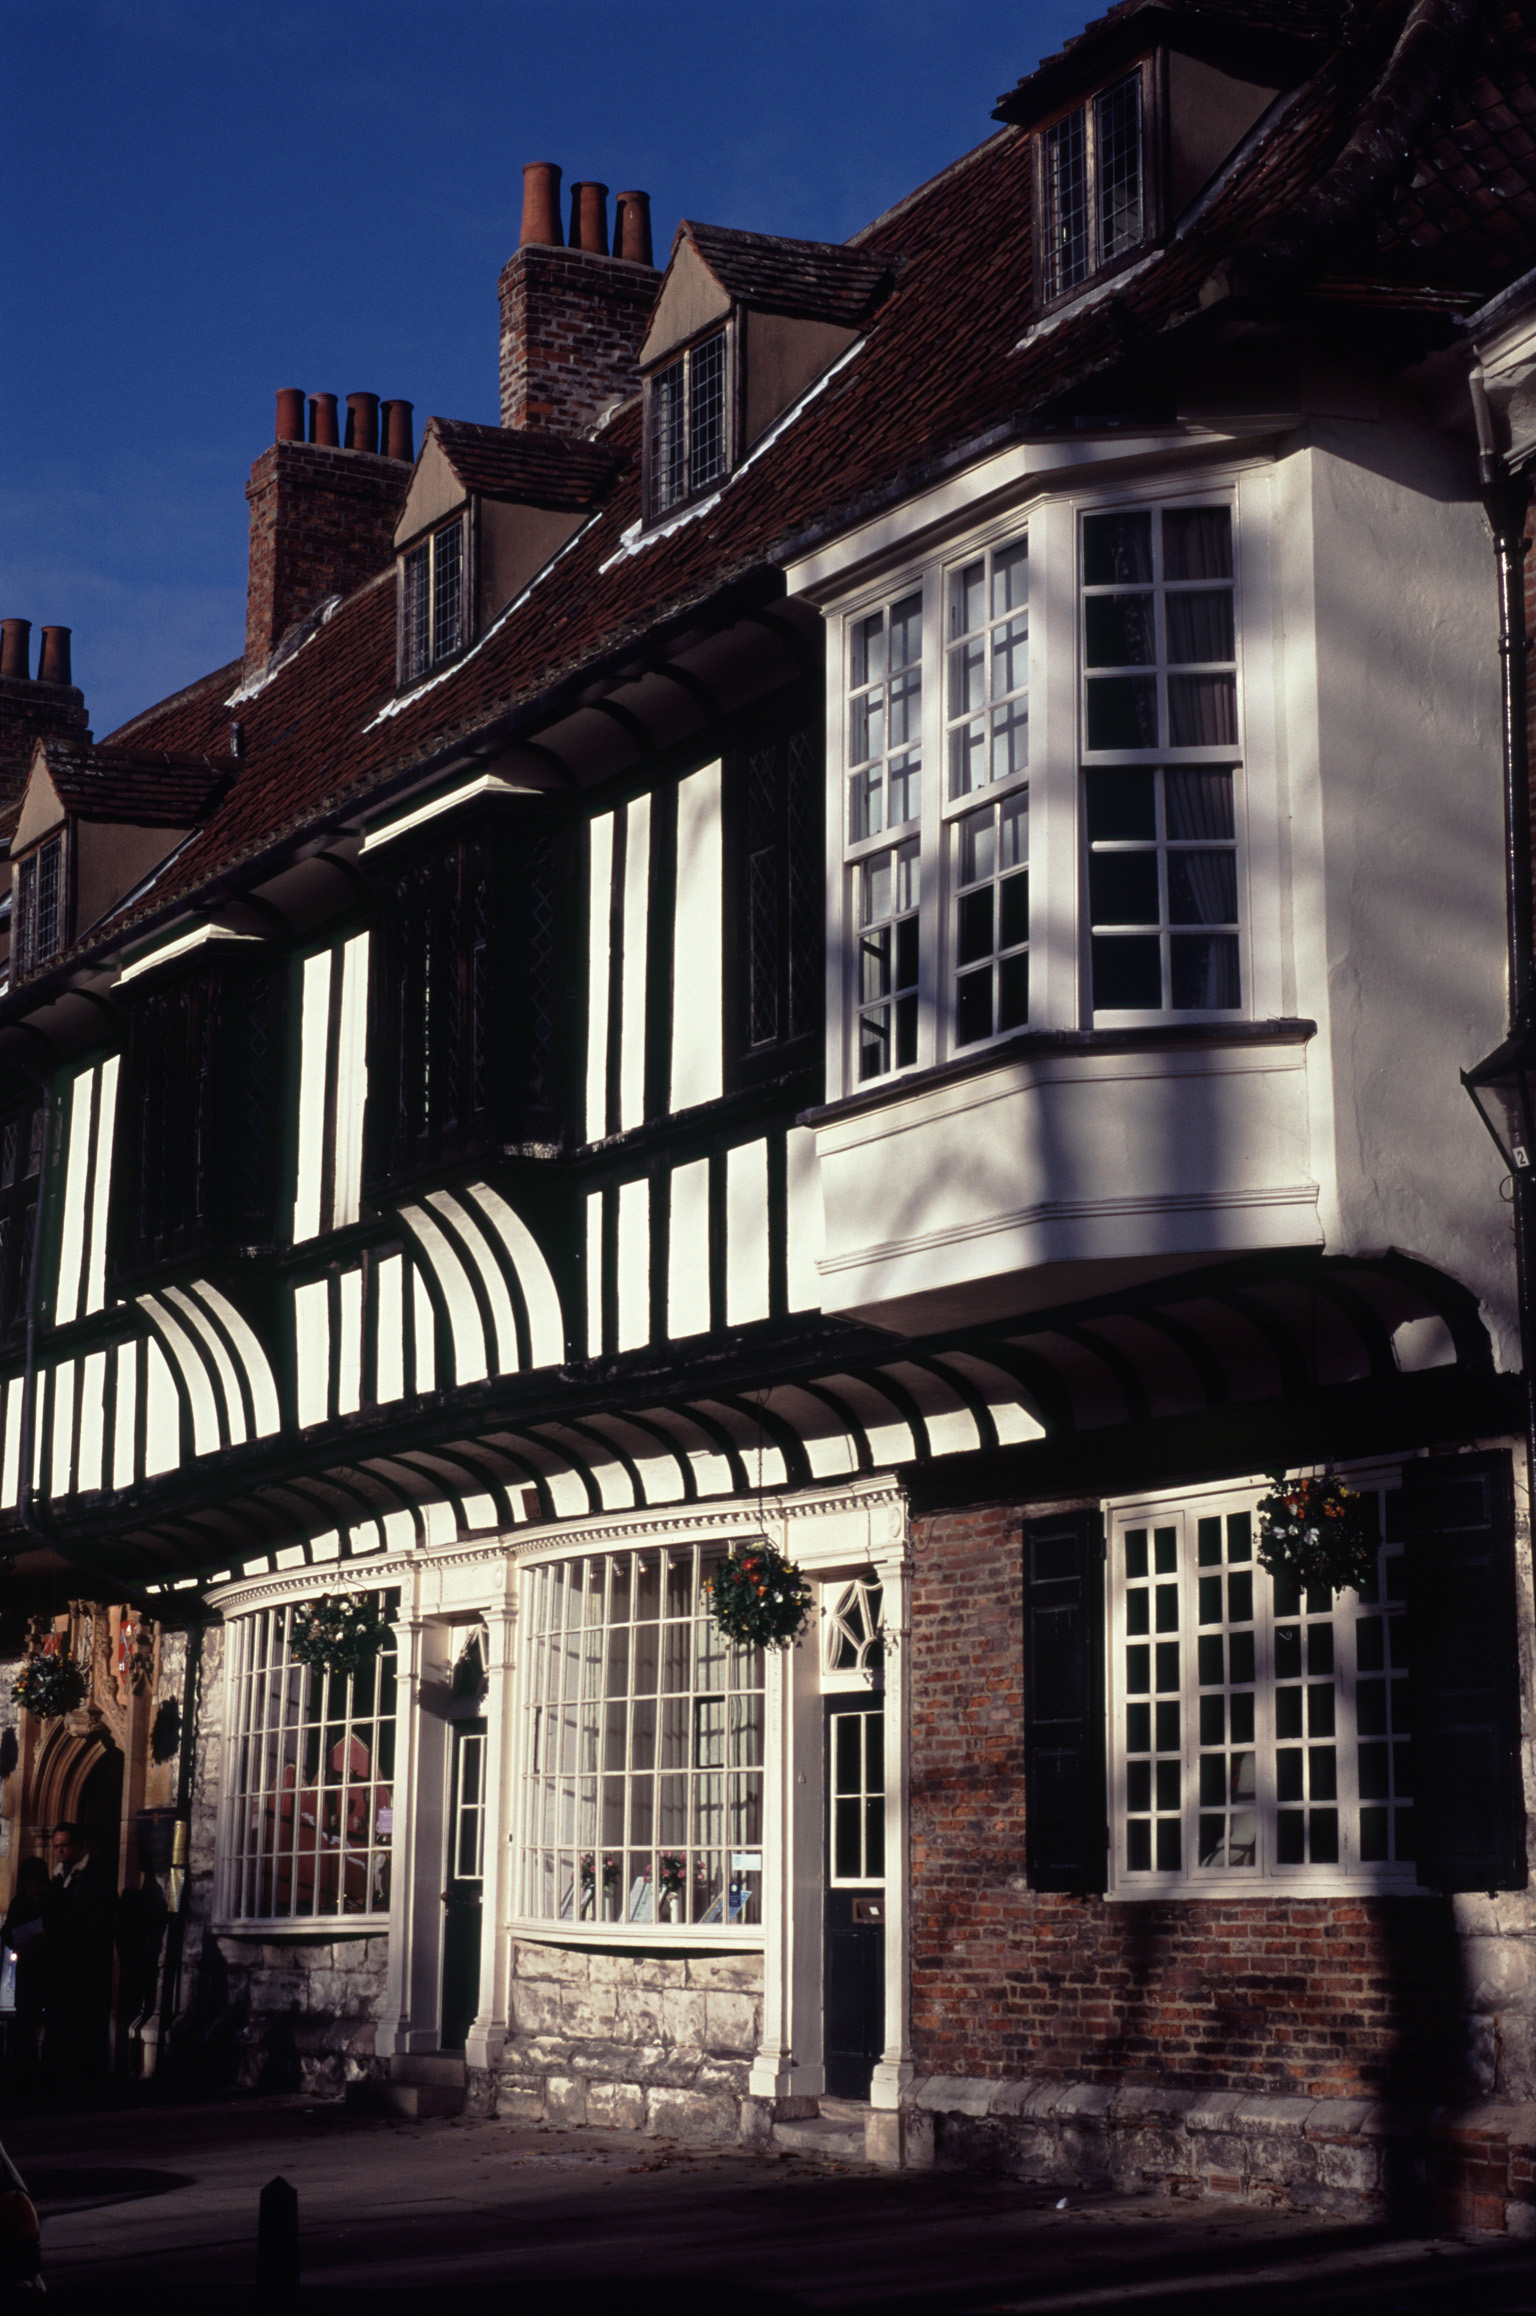 Facade of Traditional Timber Framed Architecture Buildings, York, England